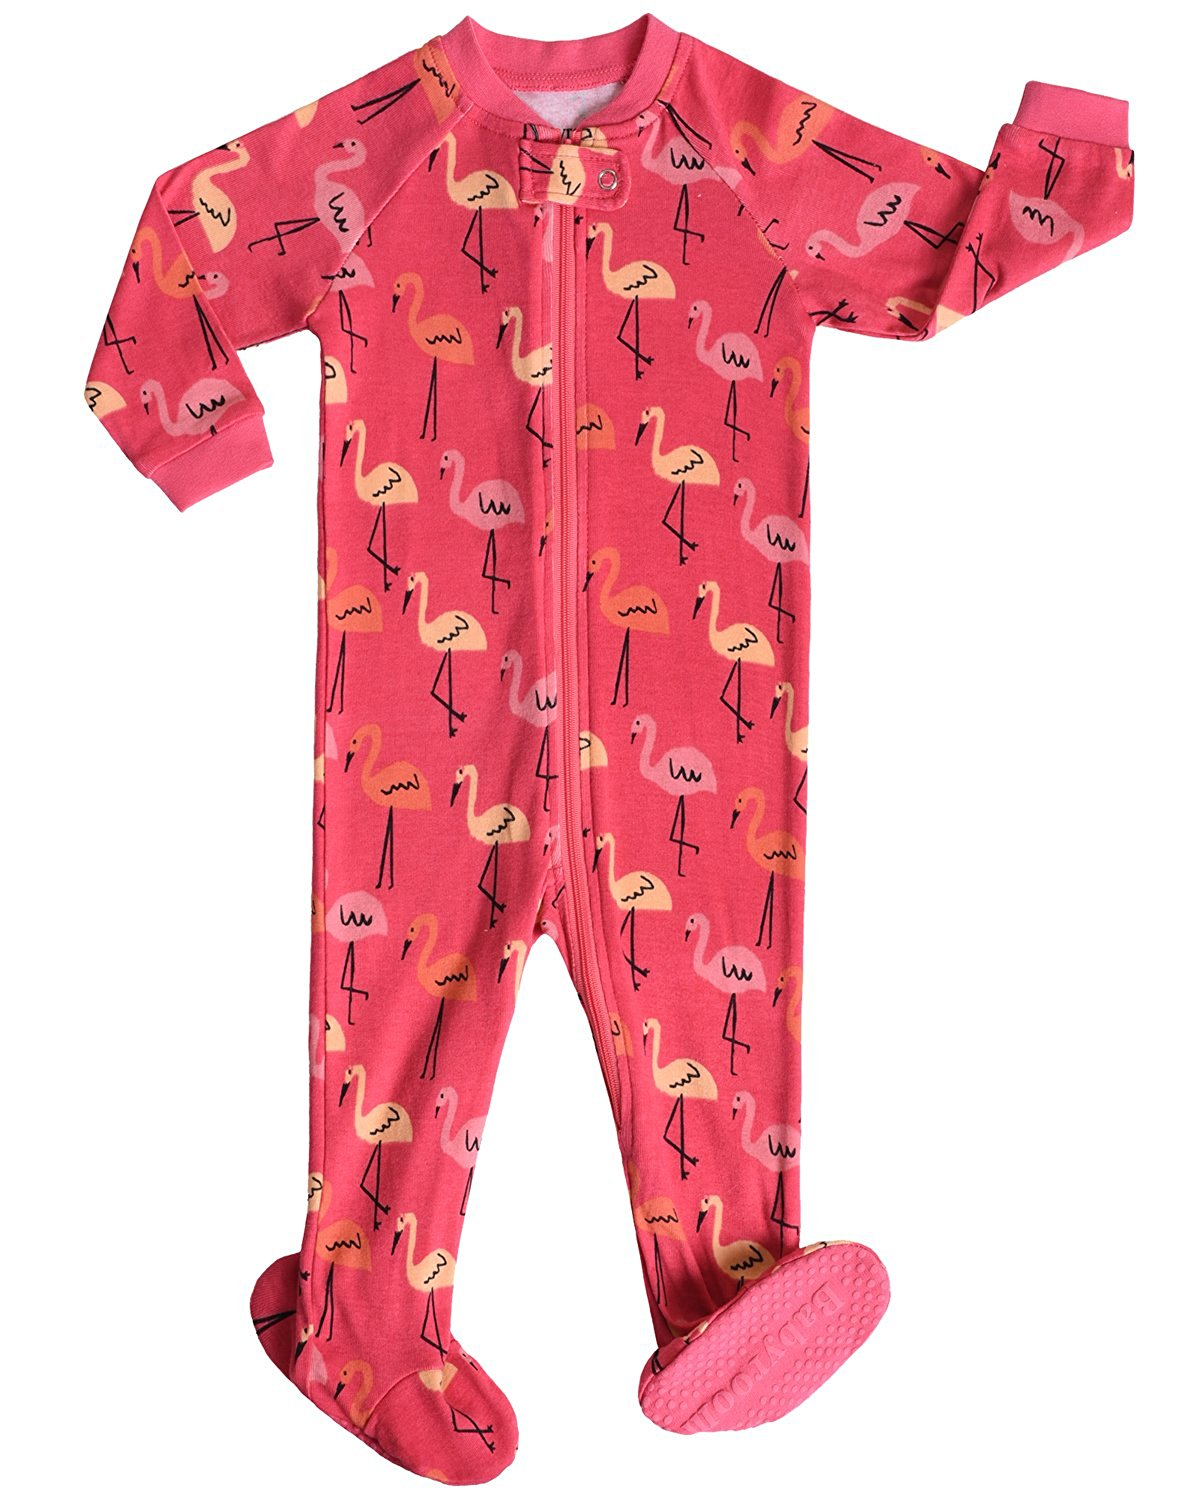 32675df102 Get Quotations · Babyroom Little and Baby Girls Footed Flamingo Pajamas  Sleeper 100% Cotton Size 6M-5T